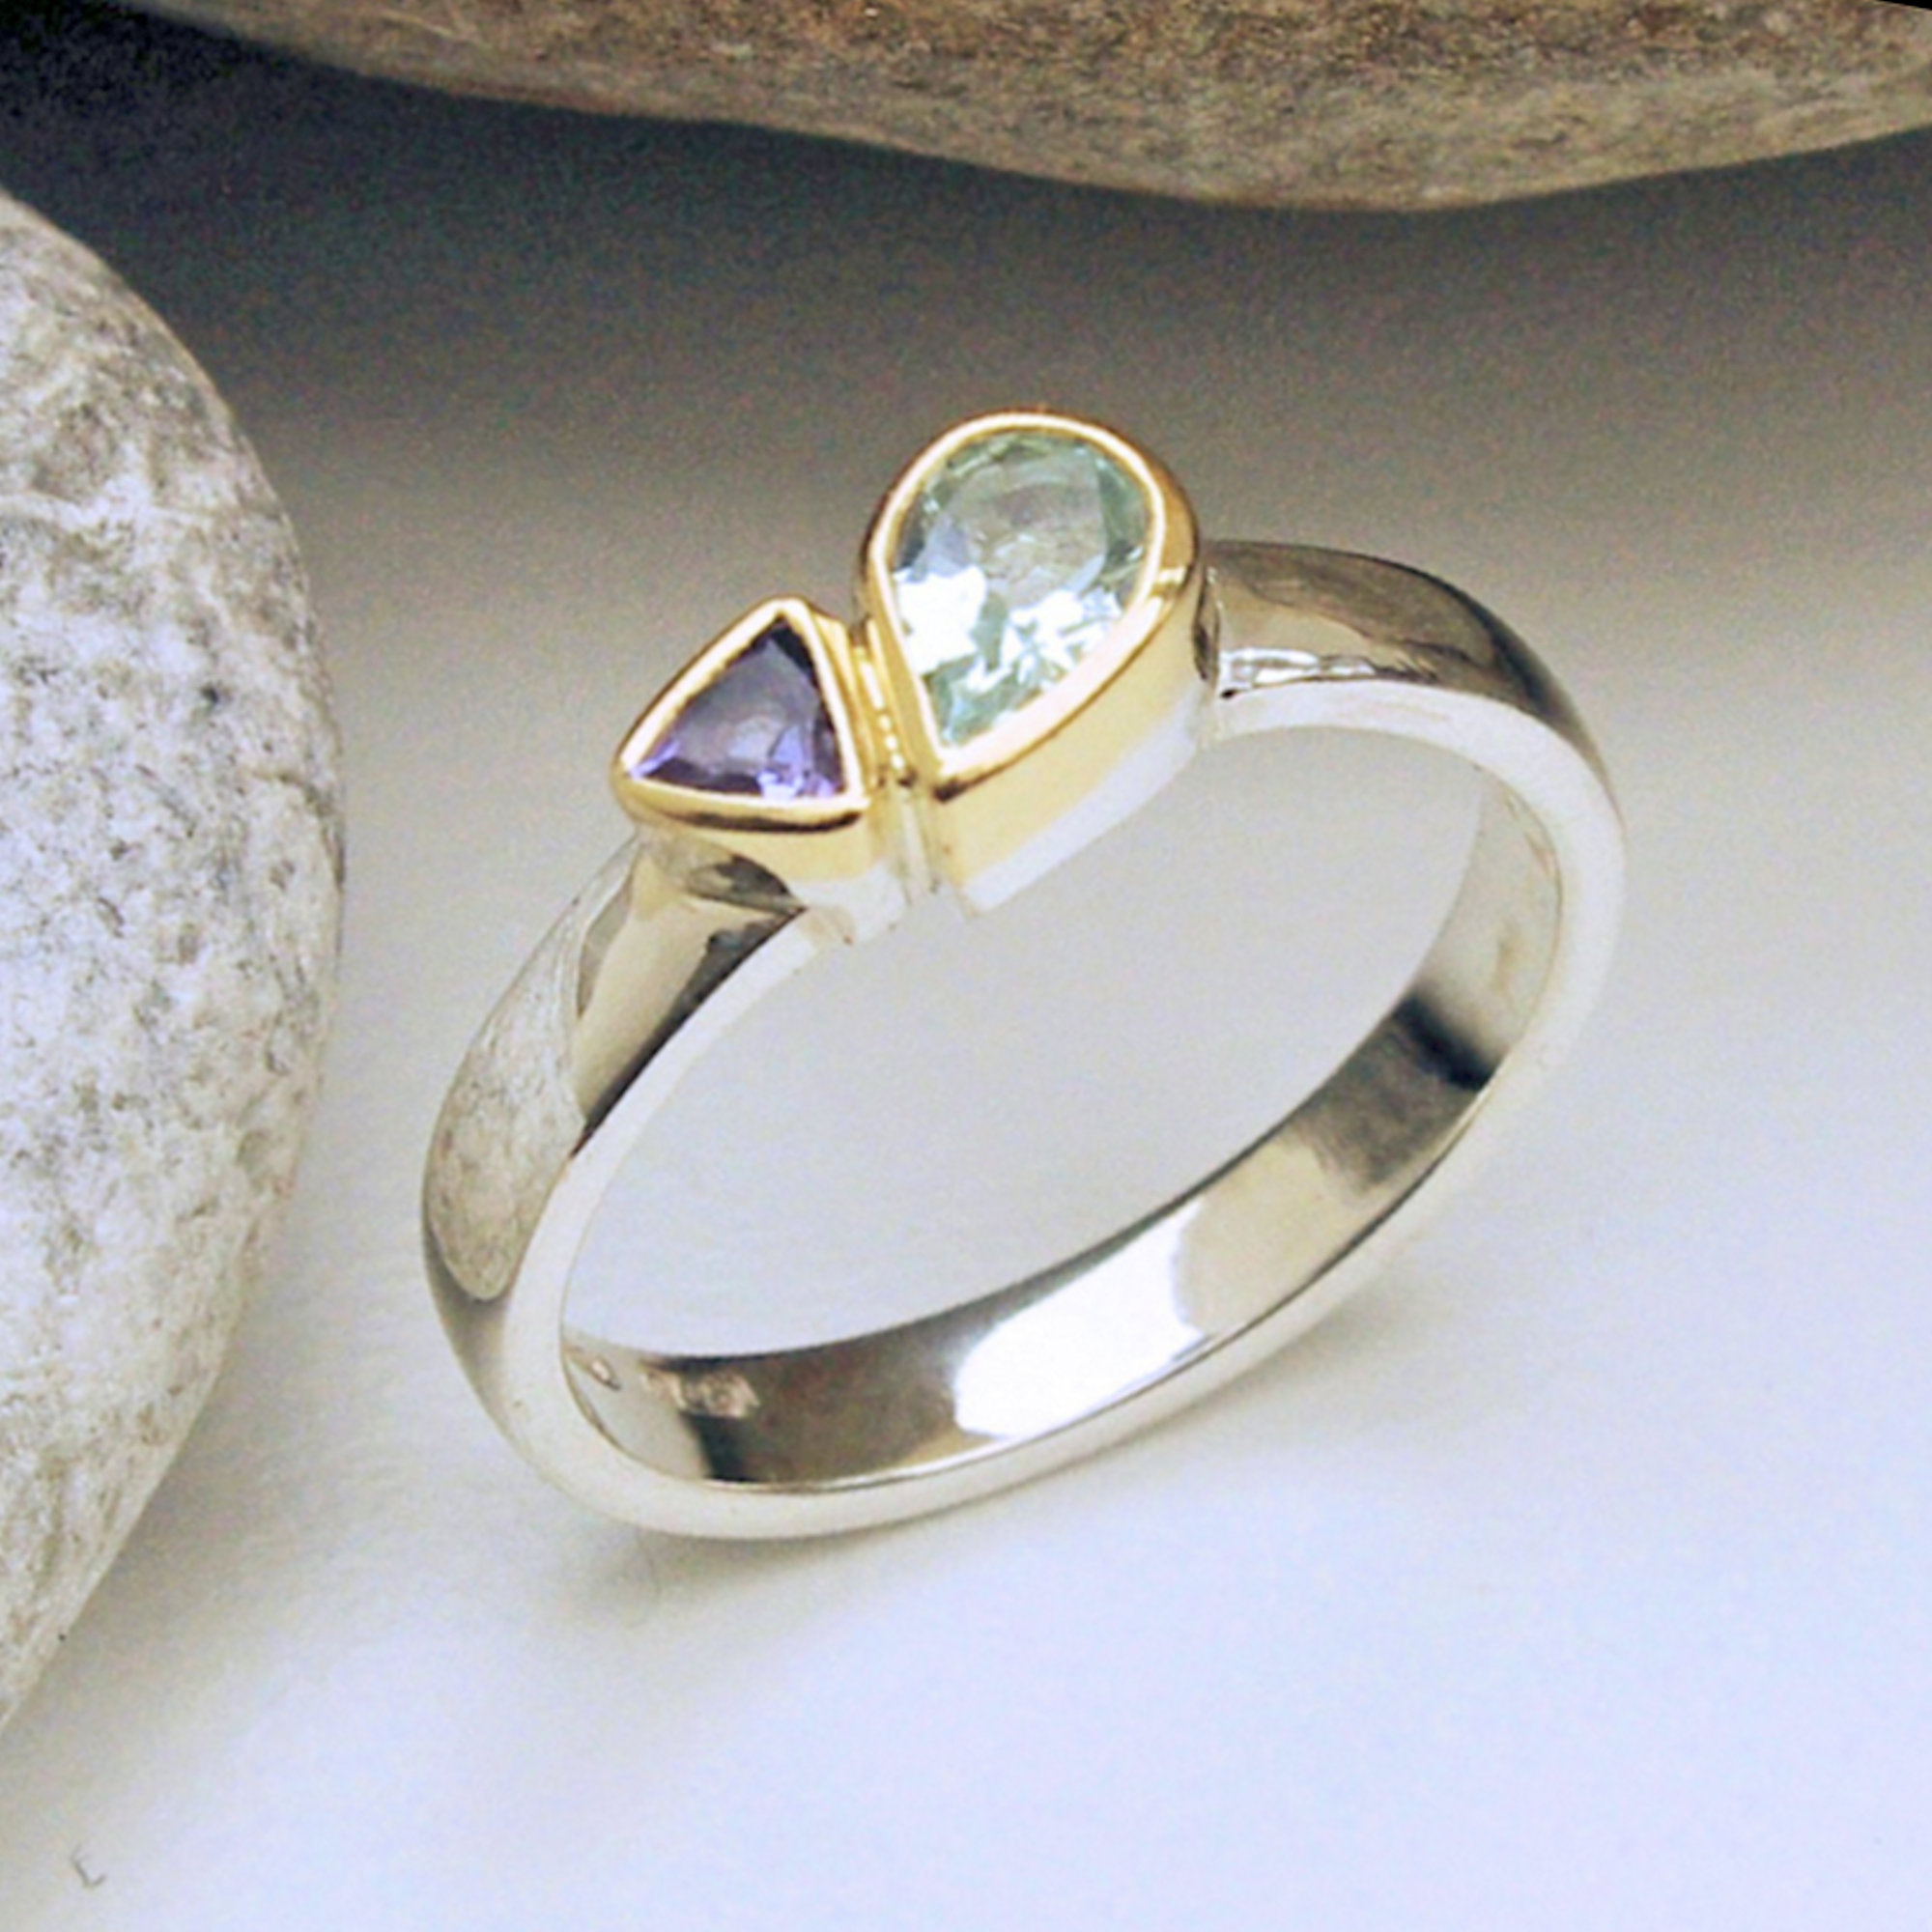 Green Beryl Tanzanite ring